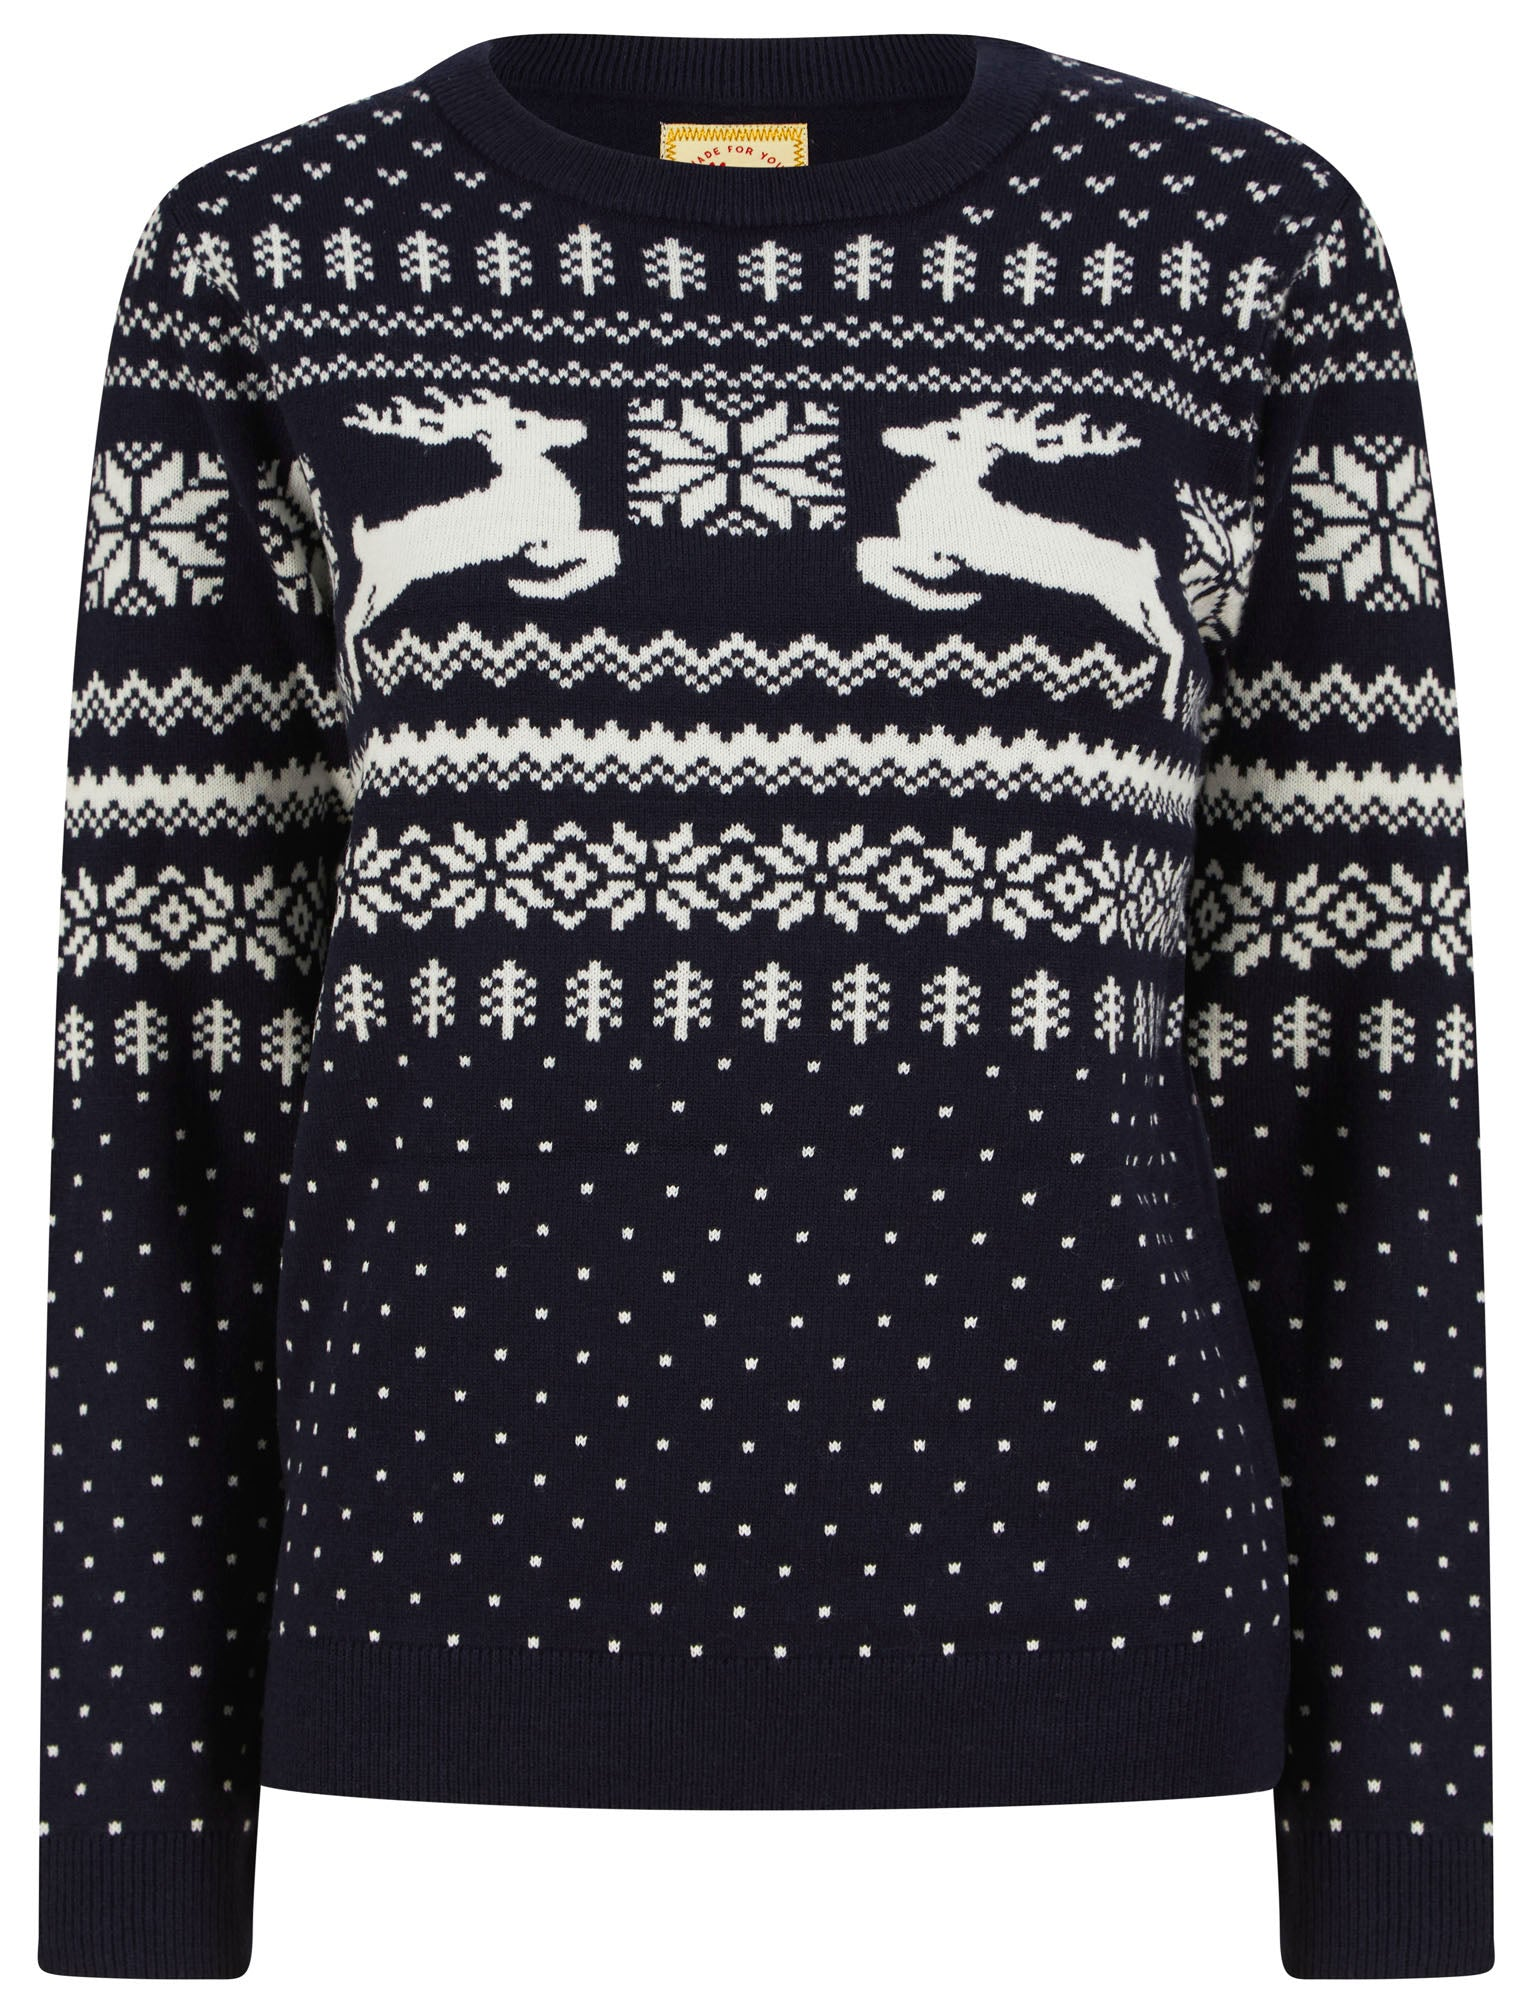 1960s Mens Shirts | 60s Mod Shirts, Hippie Shirts Jumpers Womens Lapland Jacquard Nordic Fairisle Novelty Christmas Jumper in Ink  Merry Christmas  18 - Tokyo Laundry £14.99 AT vintagedancer.com